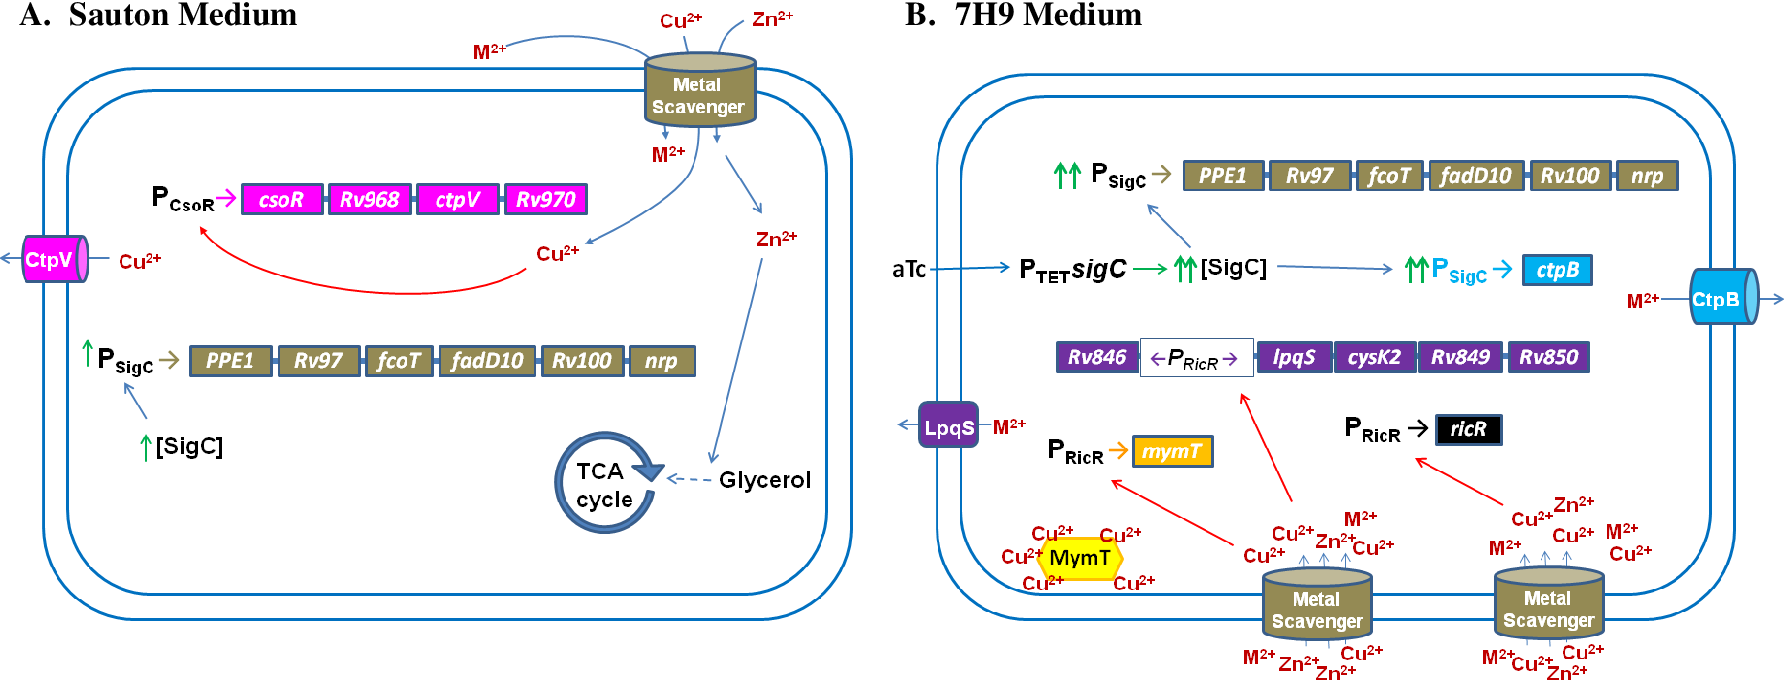 Figure 3.11: A model for SigC function in metal regulation. Diagrammed are genes impacted positively by M. tuberculosis SigC in A) Sauton medium lacking added Zn 2+ or Cu 2+ or B) 7H9 medium containing each at 6 μM. Genes are not drawn to scale. Promoters (P) are subscripted with known regulators. Upward green arrows denote elevated levels of SigC or SigC-transcribed genes. Metalmediated promoter derepression is indicated by red arrows. A) In a very low metal environment, SigC transcribes the nrp operon, encoding a predicted trace-metal scavenging system. Imported metals include Zn 2+ (activates glycerol kinase to enable growth on glycerol) and Cu 2+ (binds copper-sensitive operon repressor, CsoR, and derepresses the csoR operon encoding cation transport protein V, CtpV [185] and other potential metals (M 2+ ). CtpV functions as a copper-exporting ATPase [172]. B) When trace metals are not scarce, induction of sigC from a tetracycline-inducible promoter (TET) by anhydrotetracycline (aTc) results in increased SigCmediated transcription of the nrp operon which causes an influx of trace metals. Imported Cu 2+ binds regulated-in-copper repressor (RicR) [175], resulting in derepression of ricR, mymT (encoding a Cu-binding metallothionein [174]) and the lpqS operon (encoding proteins that function to minimize oxidative damage by excess Cu 2+ [175]. Repression of ctpB is relieved by an unknown metal, enabling SigC-mediated transcription. The encoded CtpB protein is predicted to function as ATPase to export the inducing metal.